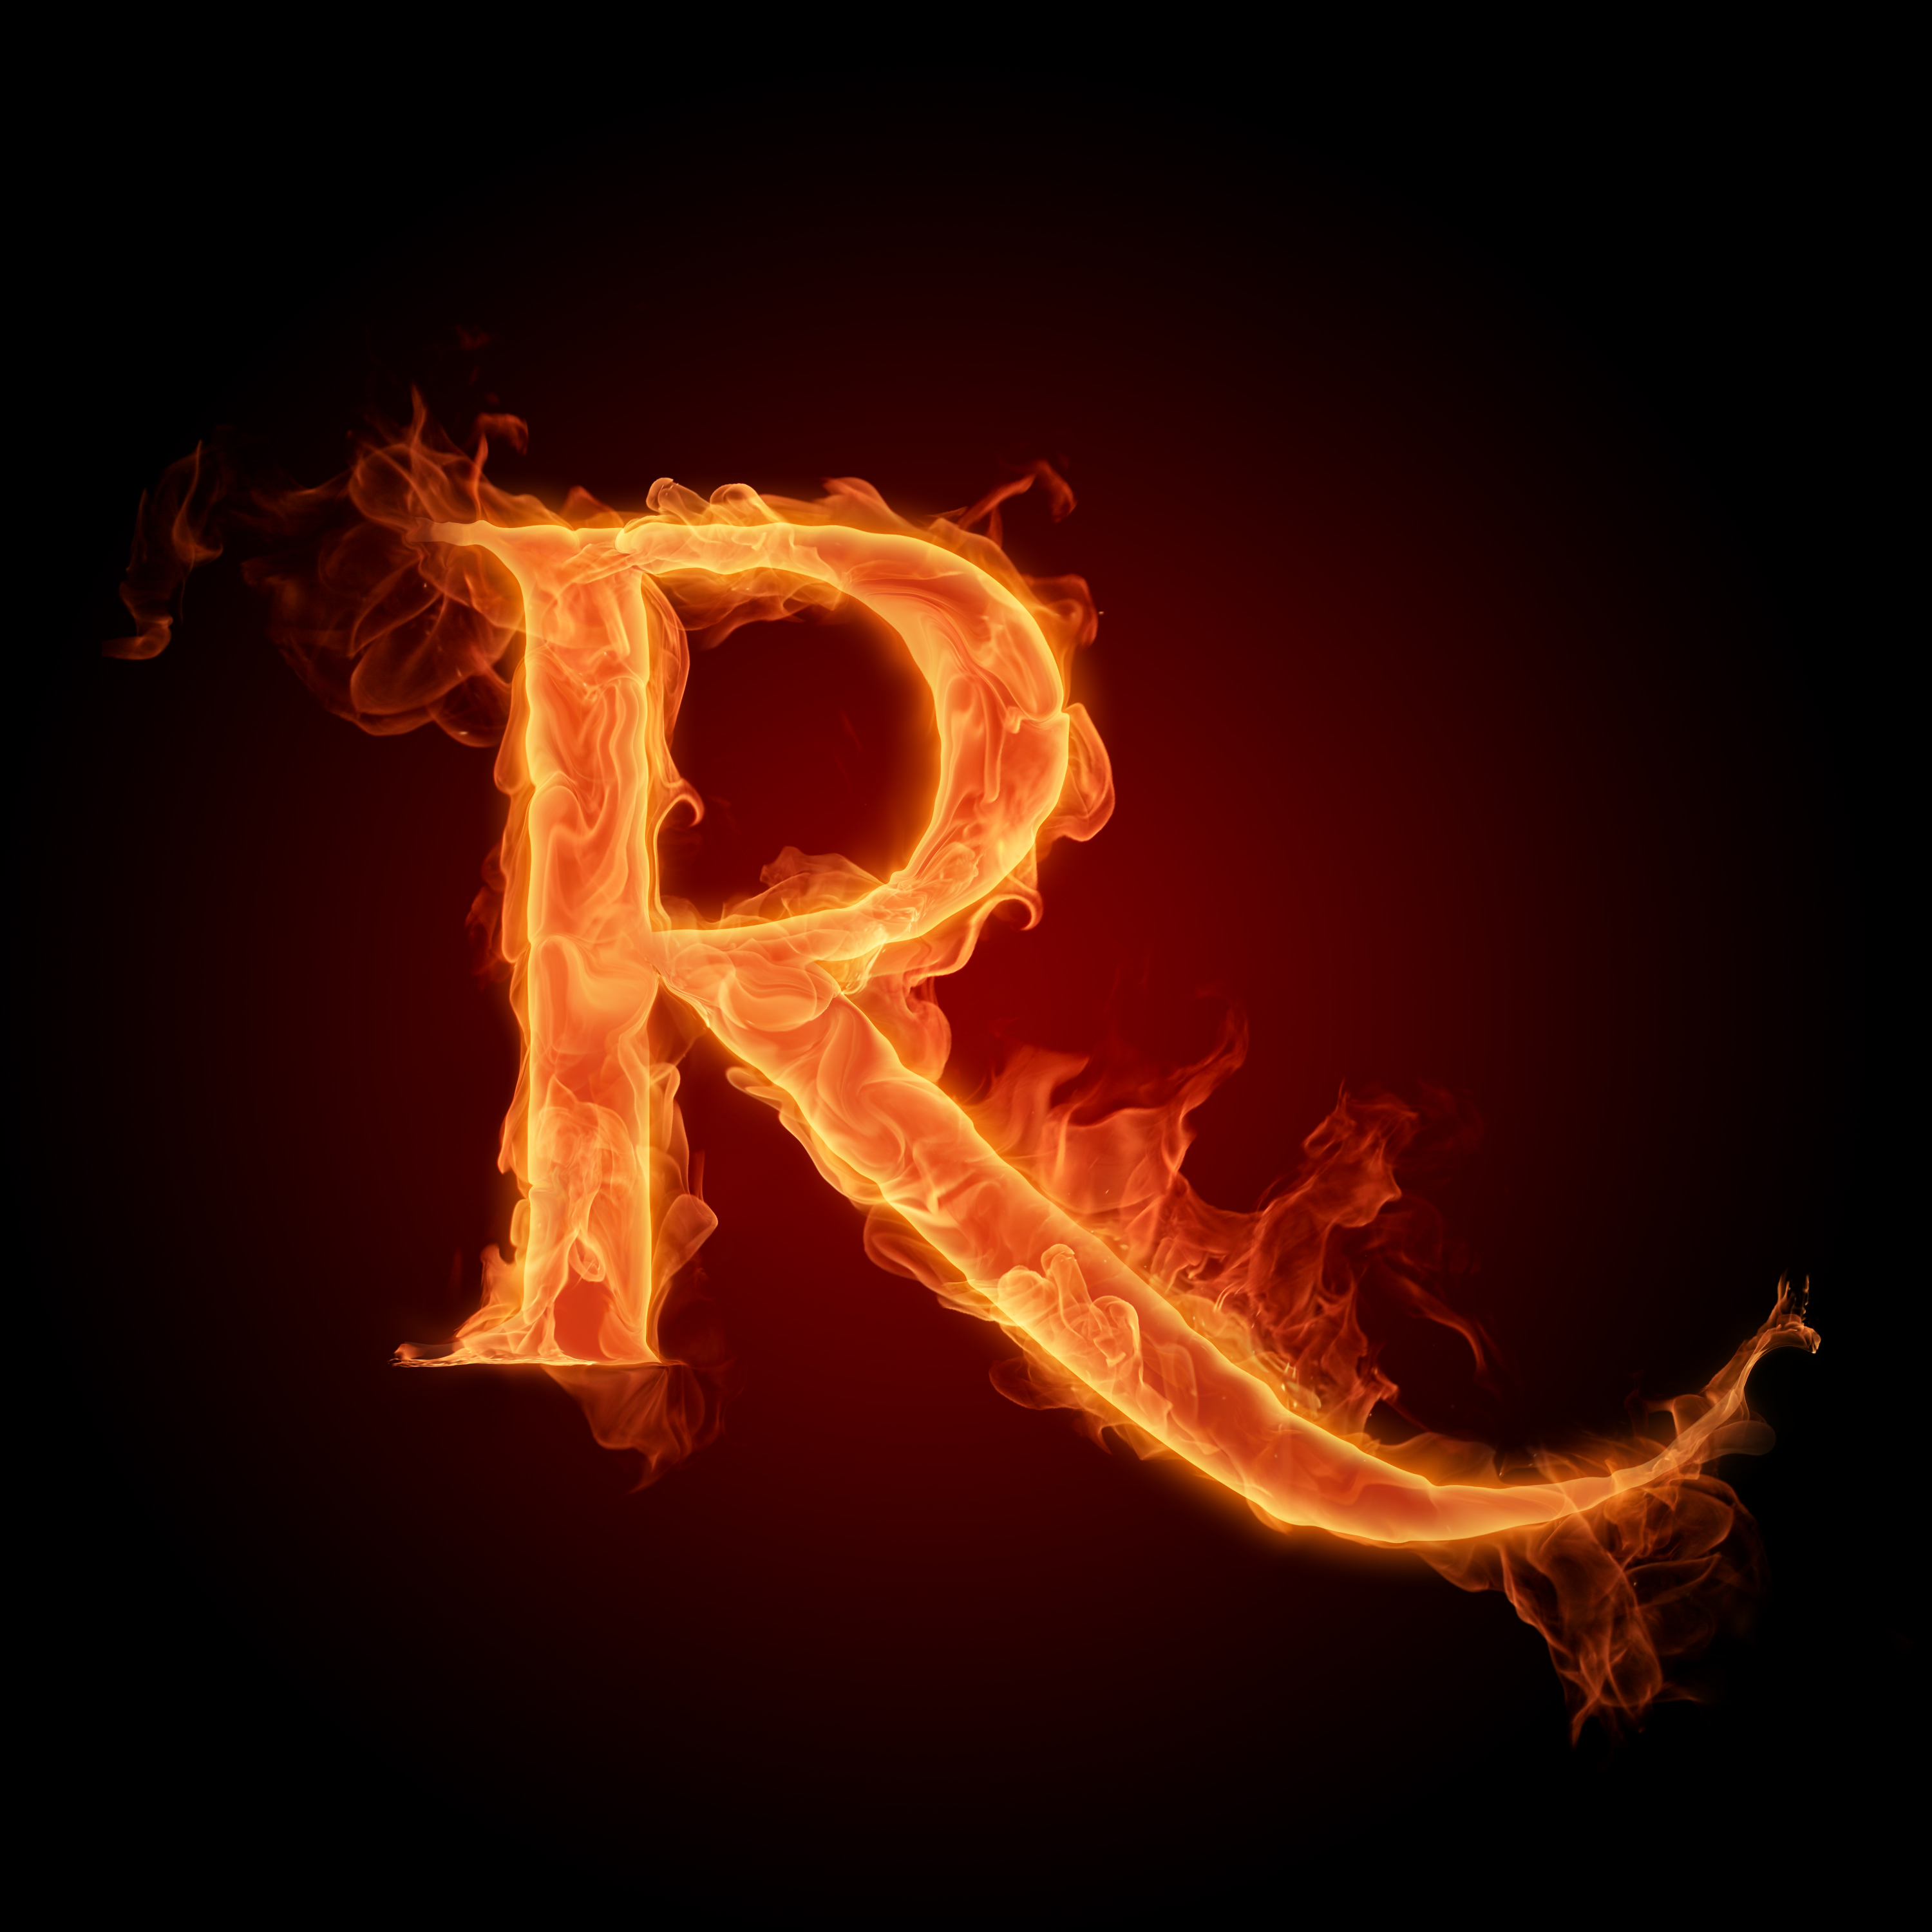 Fire Letters Wallpapers HD 3000X3000 Photo 4 of 6 3000x3000